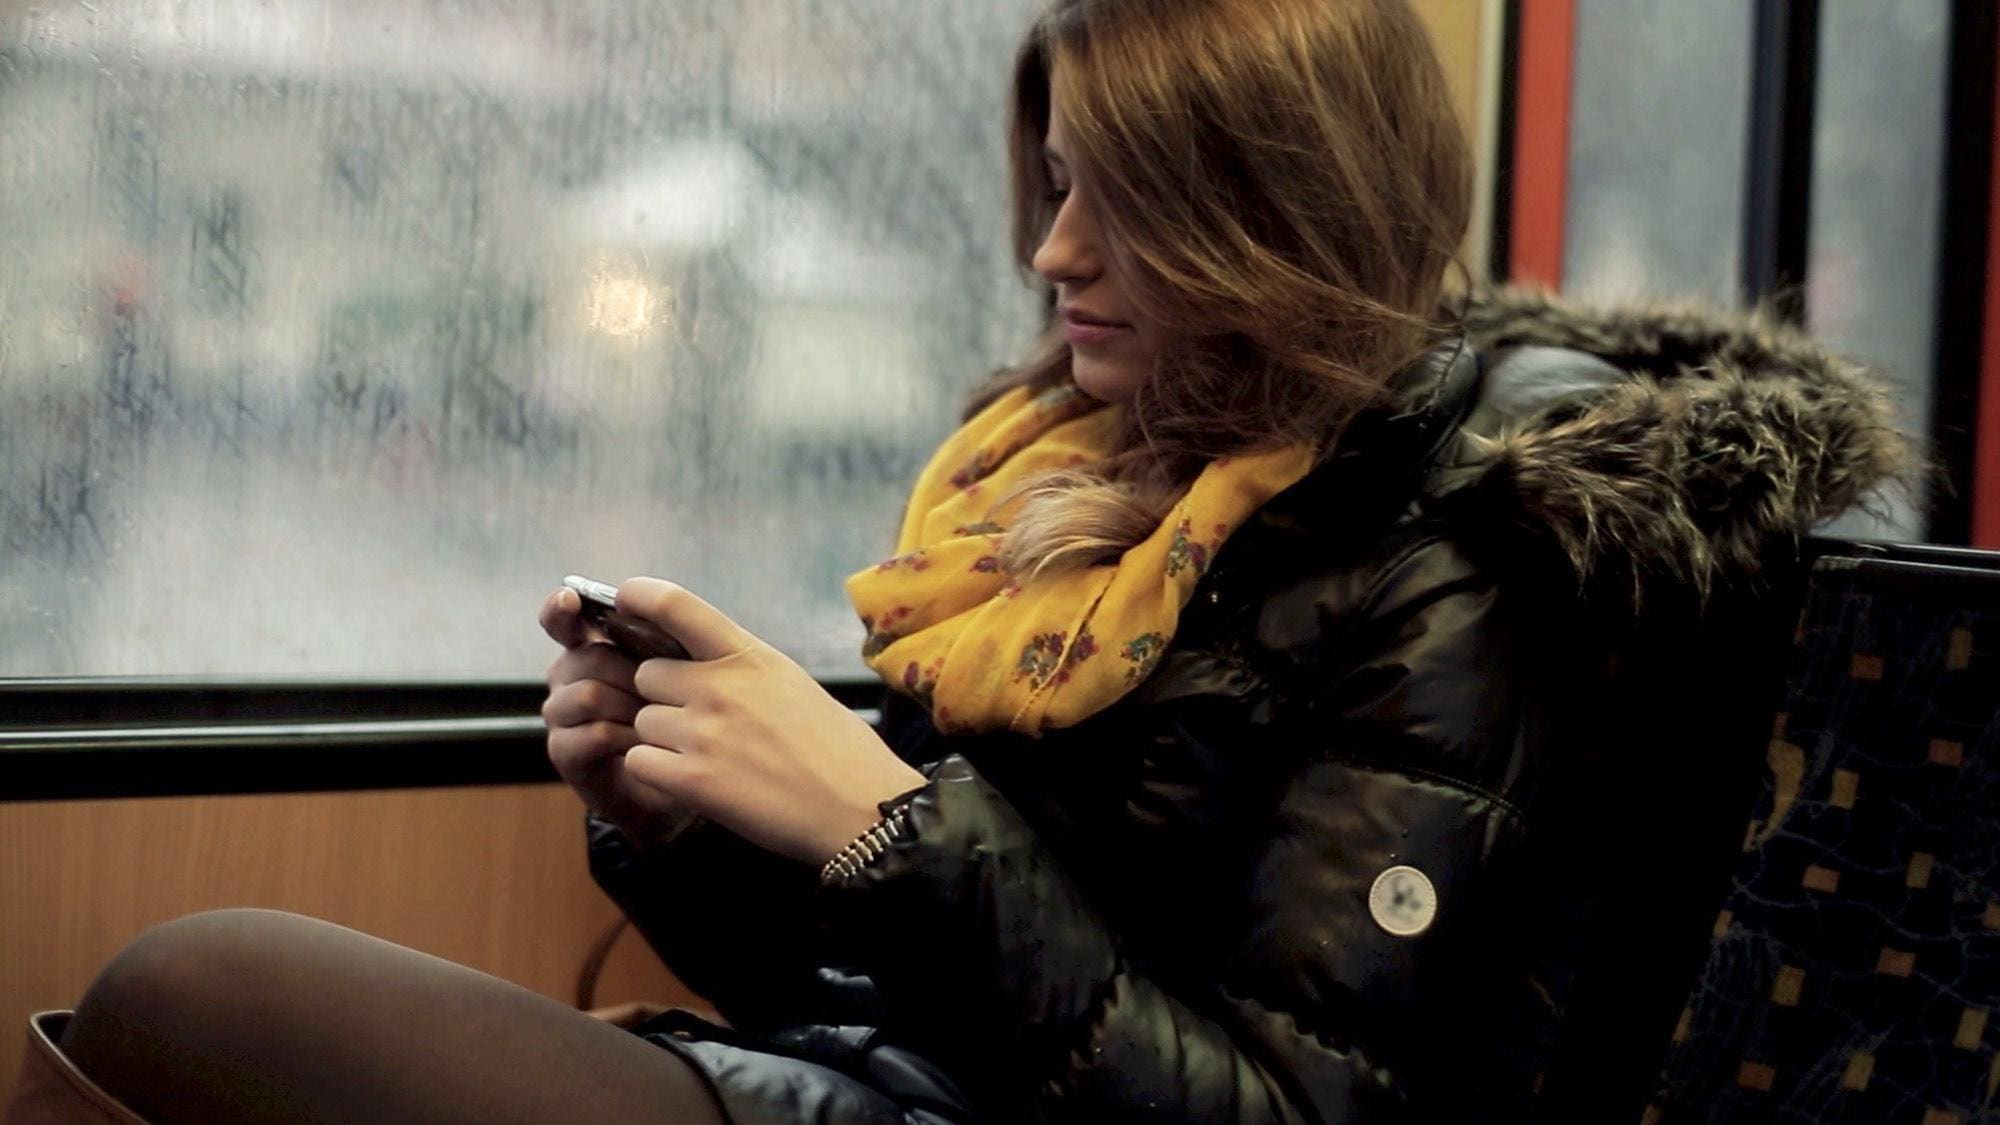 Woman sitting beside window looking at mobile device.